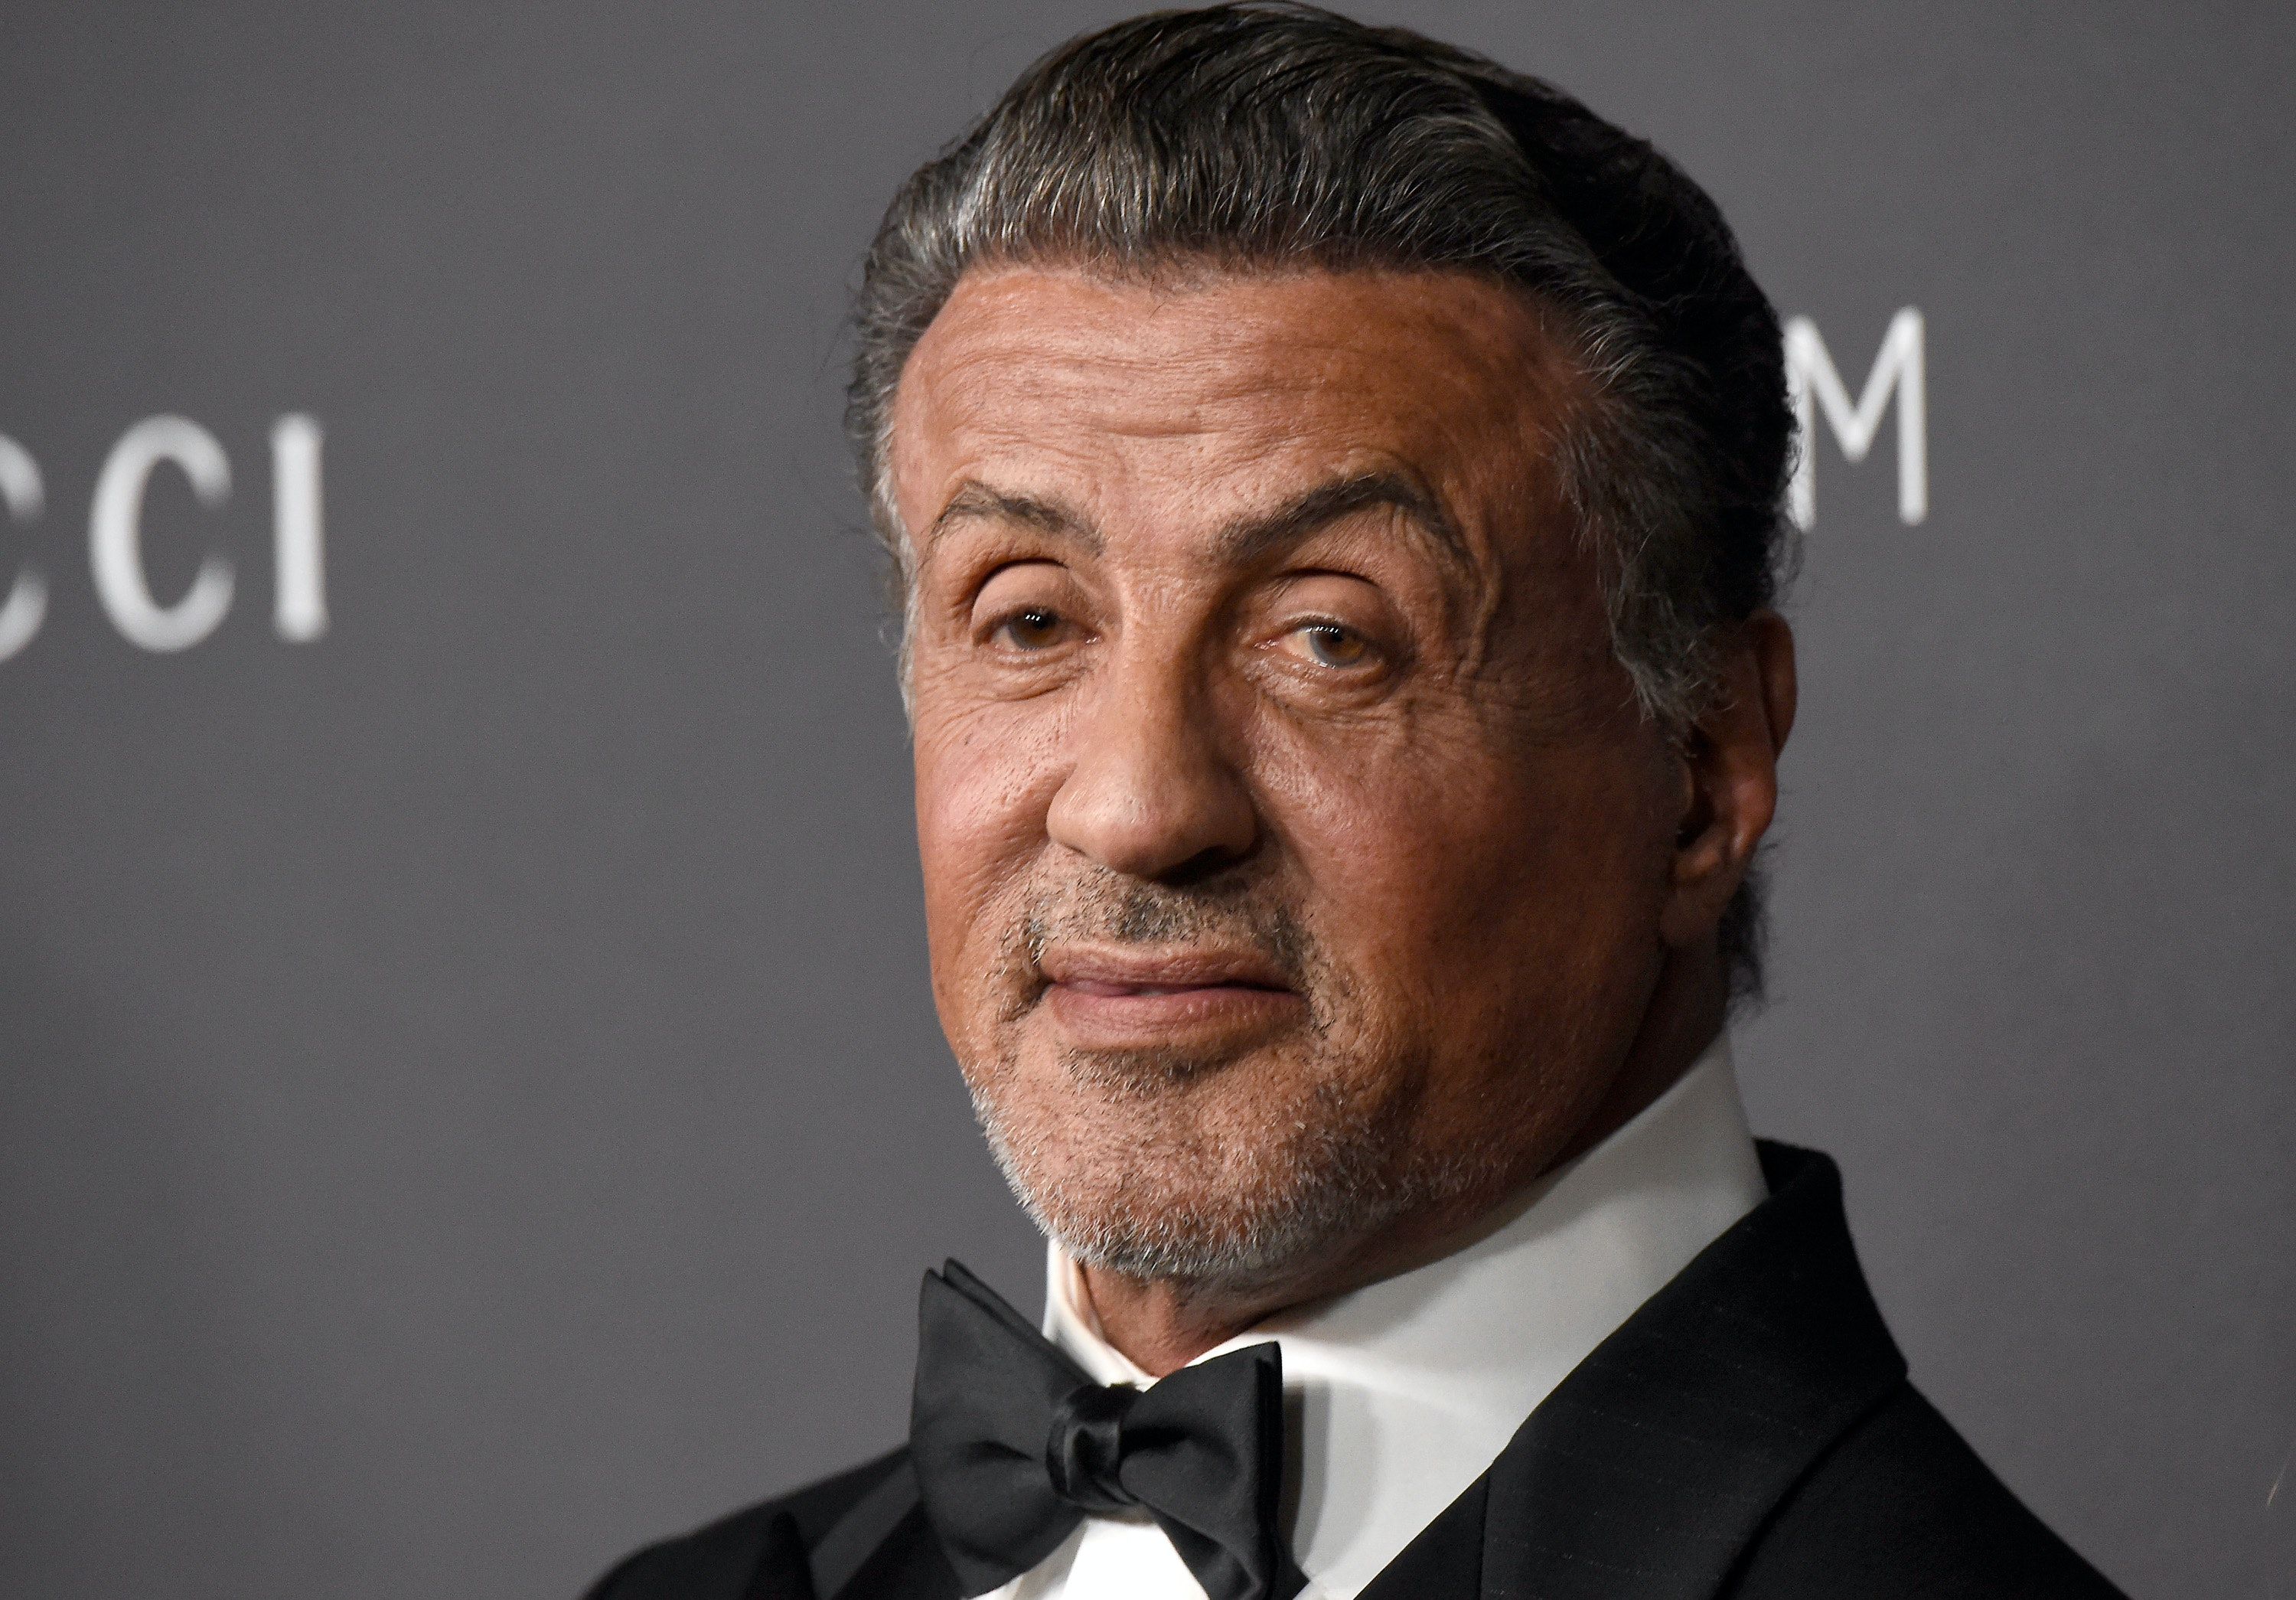 Sylvester Stallone Denies Sexually Assaulting 16-Year-Old in 1980s